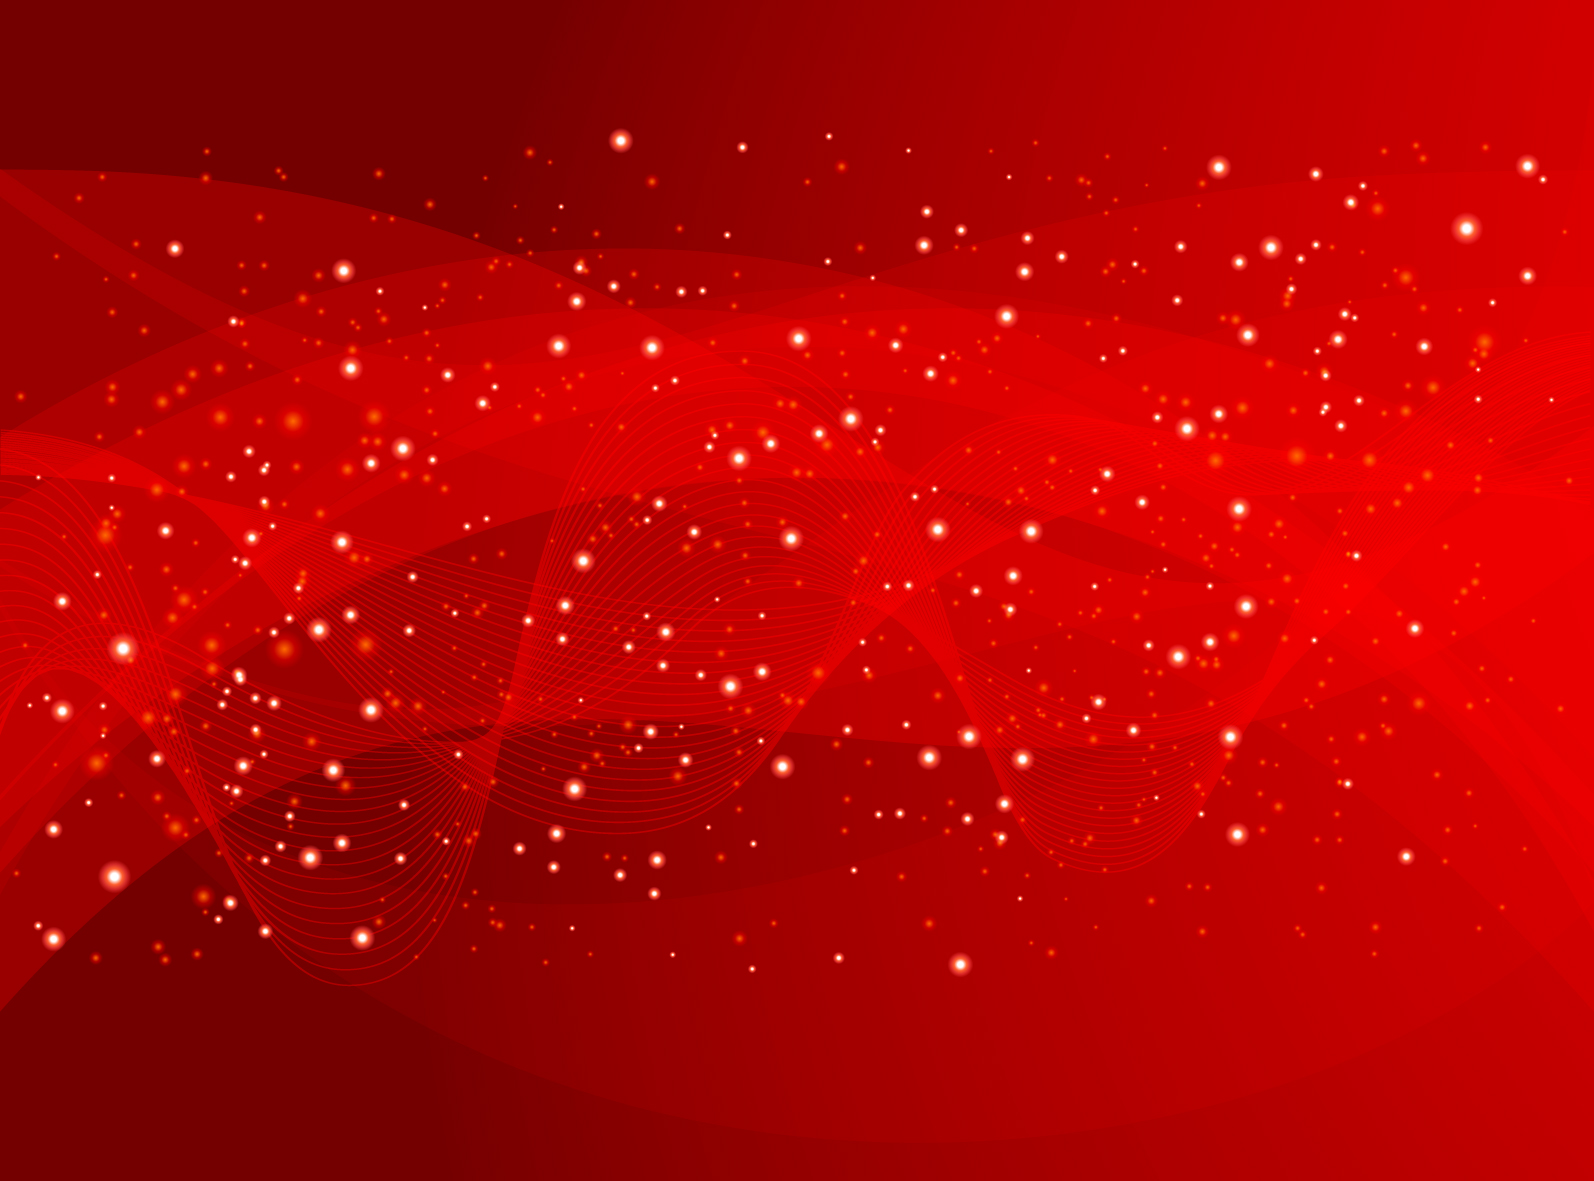 Red Background Wallpaper Image HD